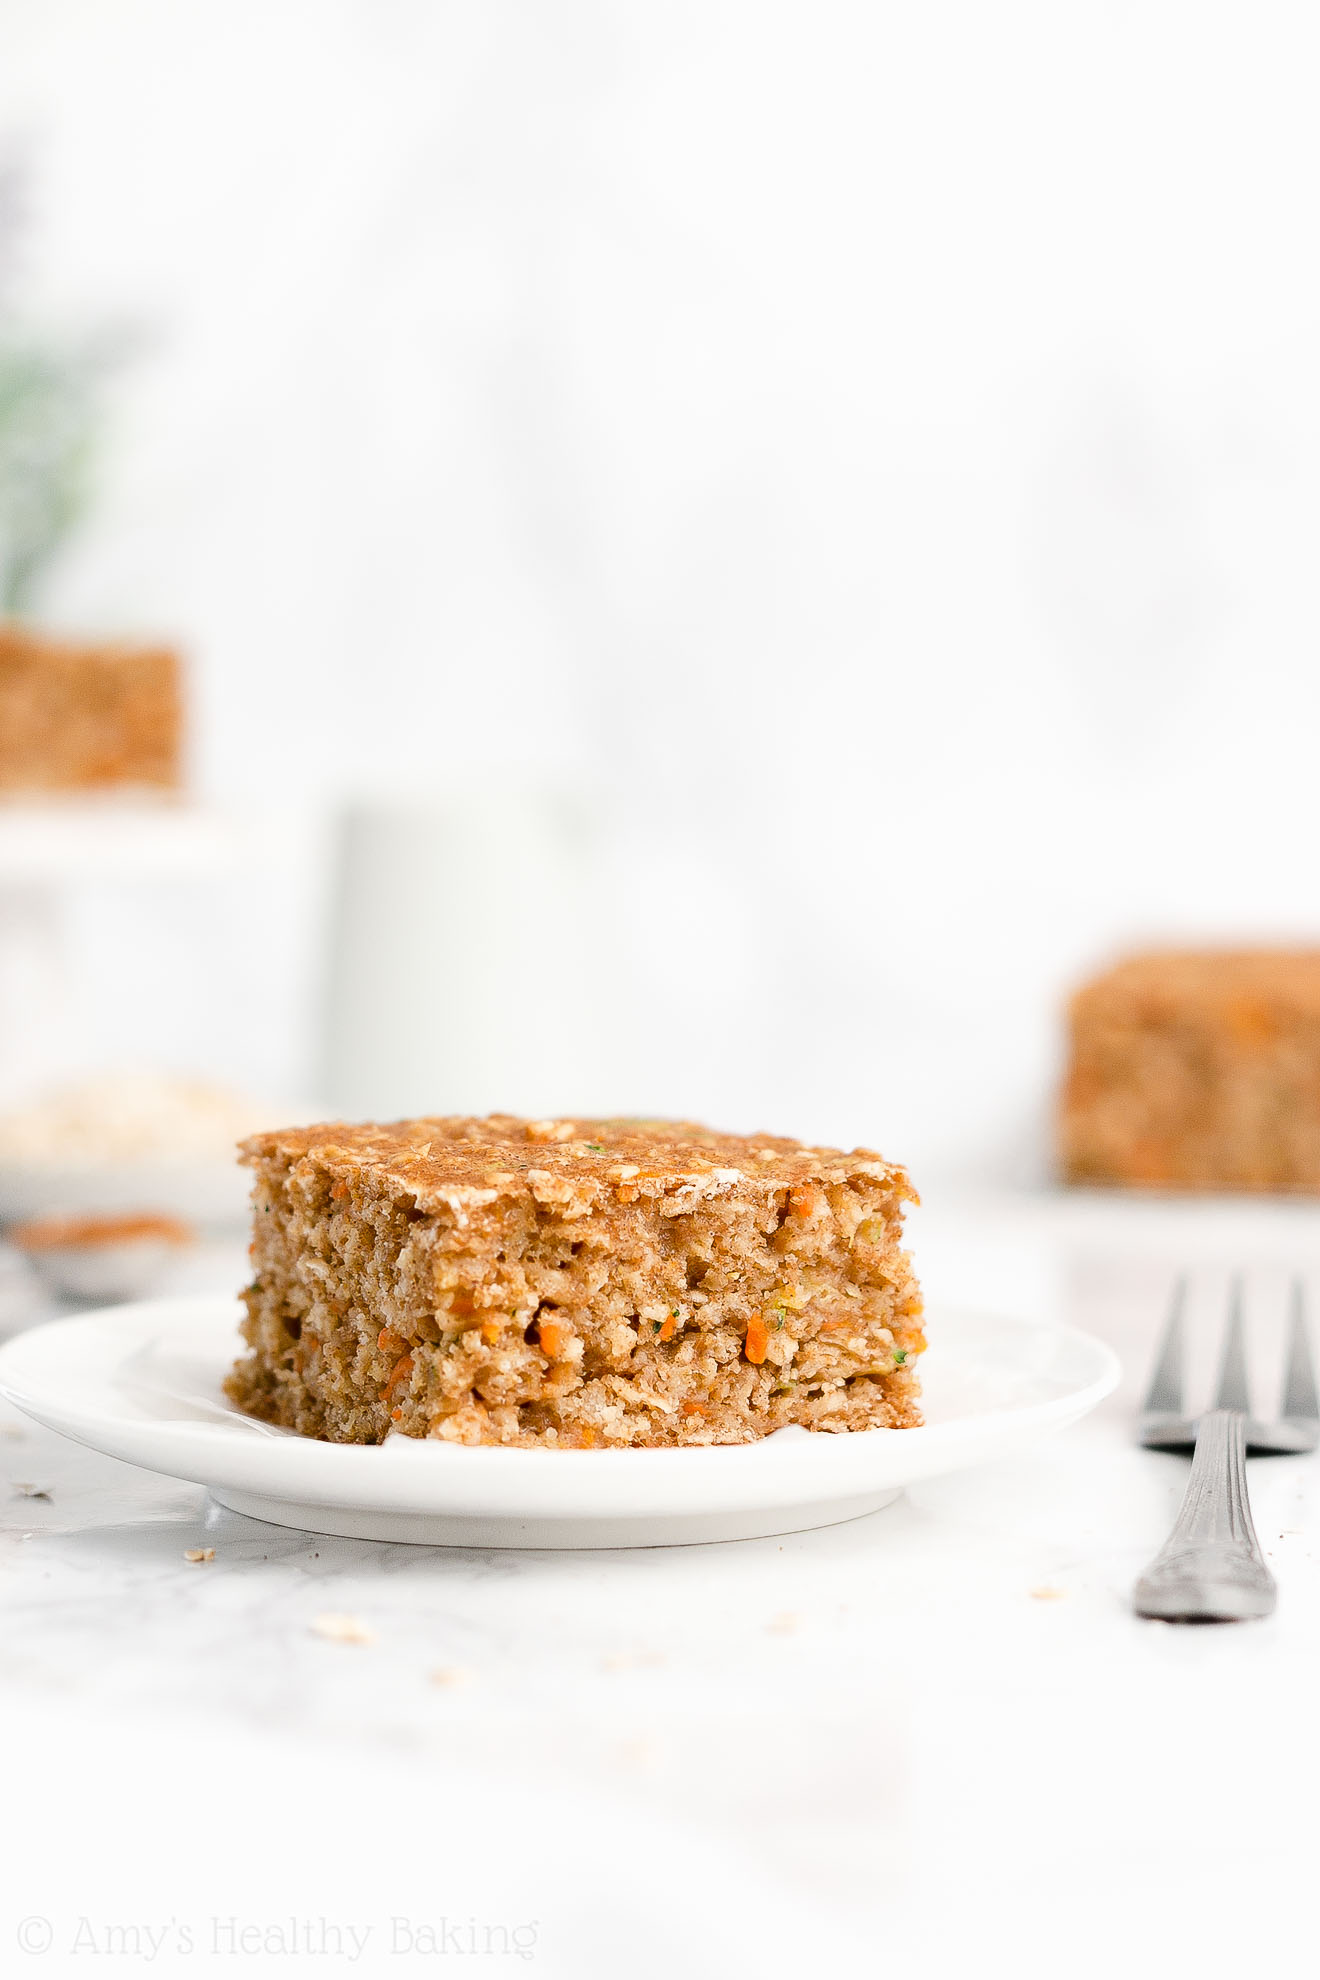 Simple Easy Healthy Clean Eating Low Fat Carrot Zucchini Oatmeal Snack Cake